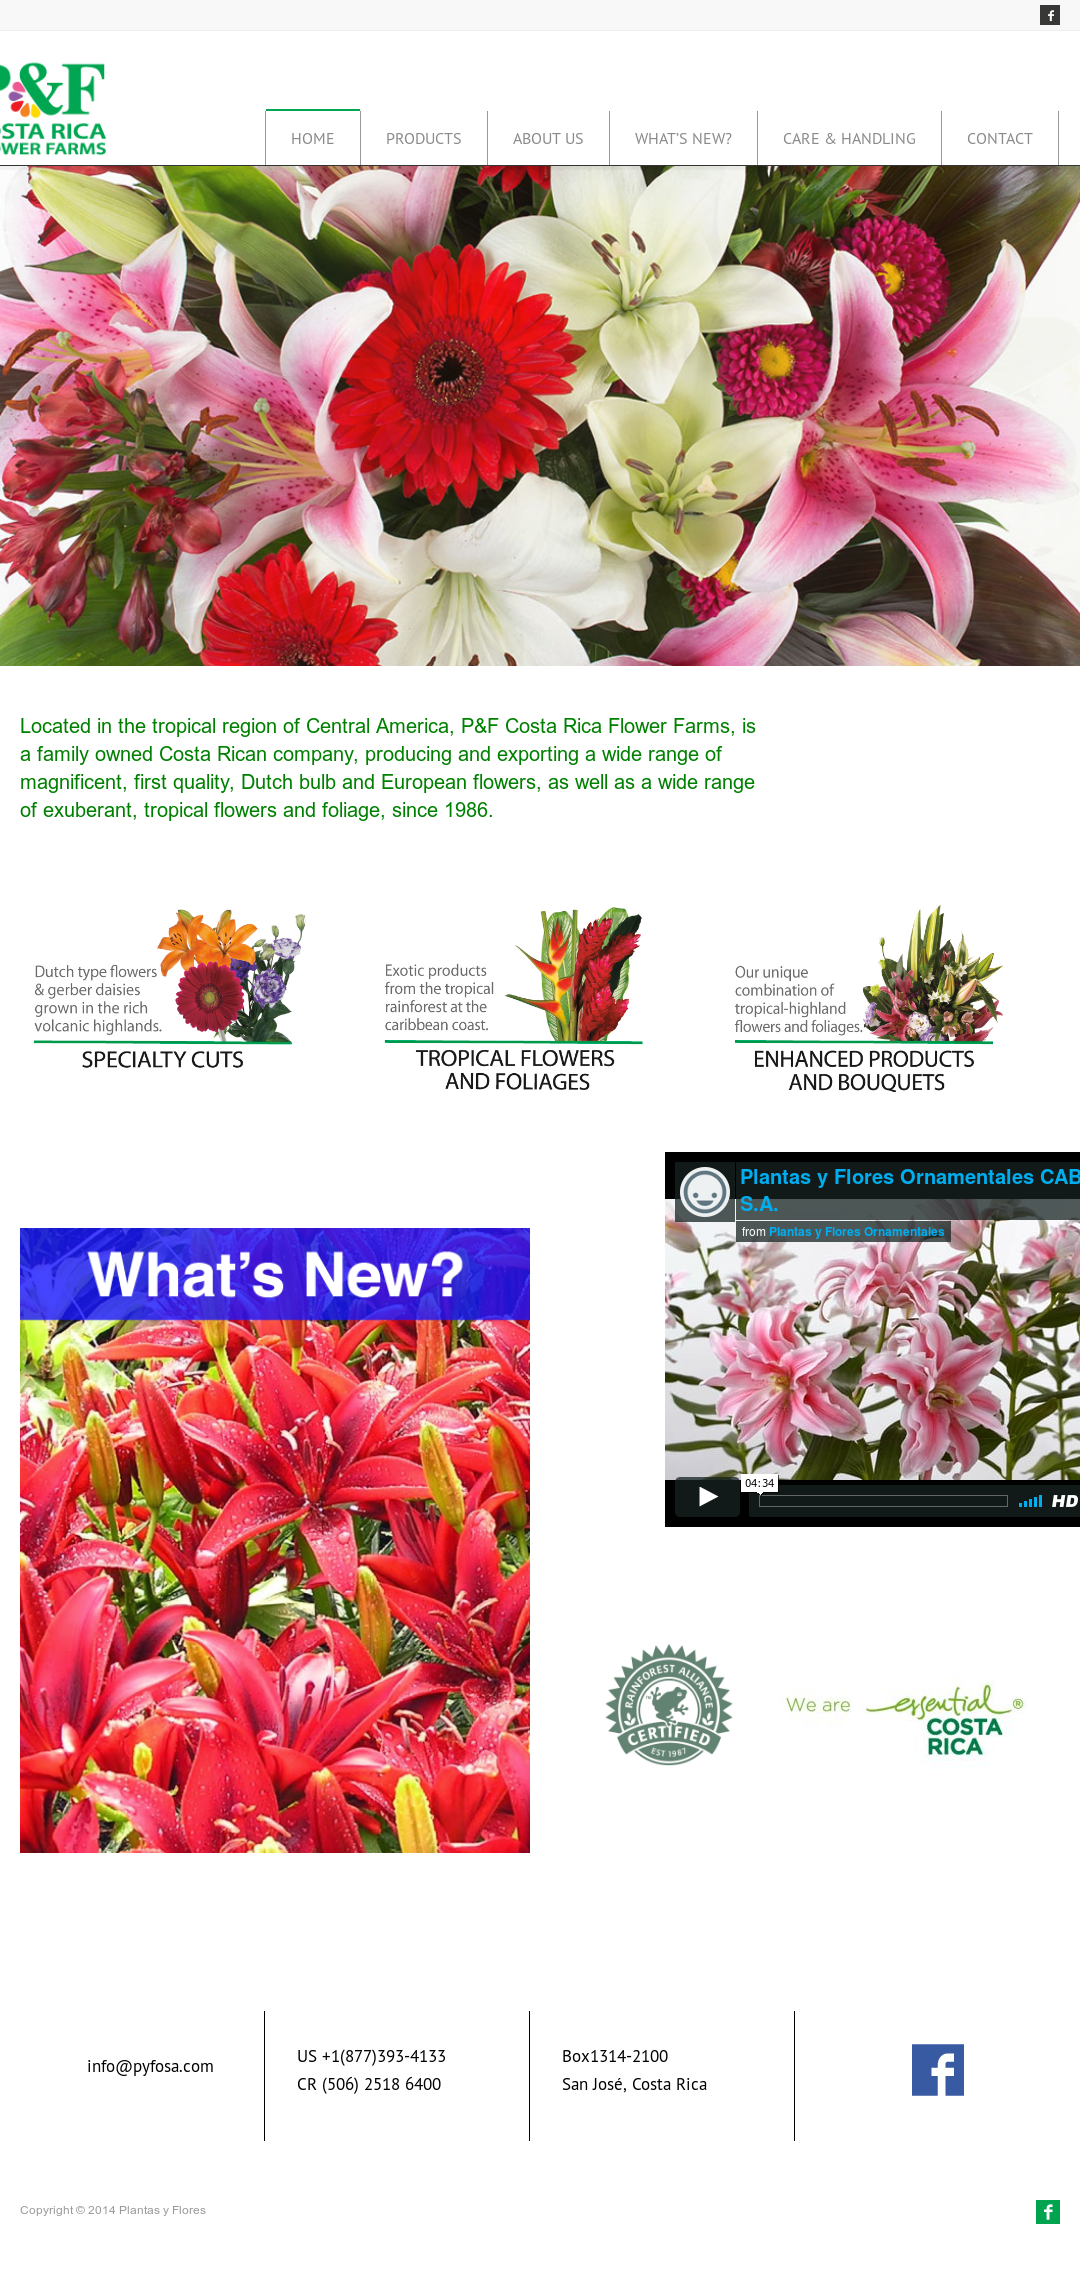 Pf Costa Rica Flower Farms Website History